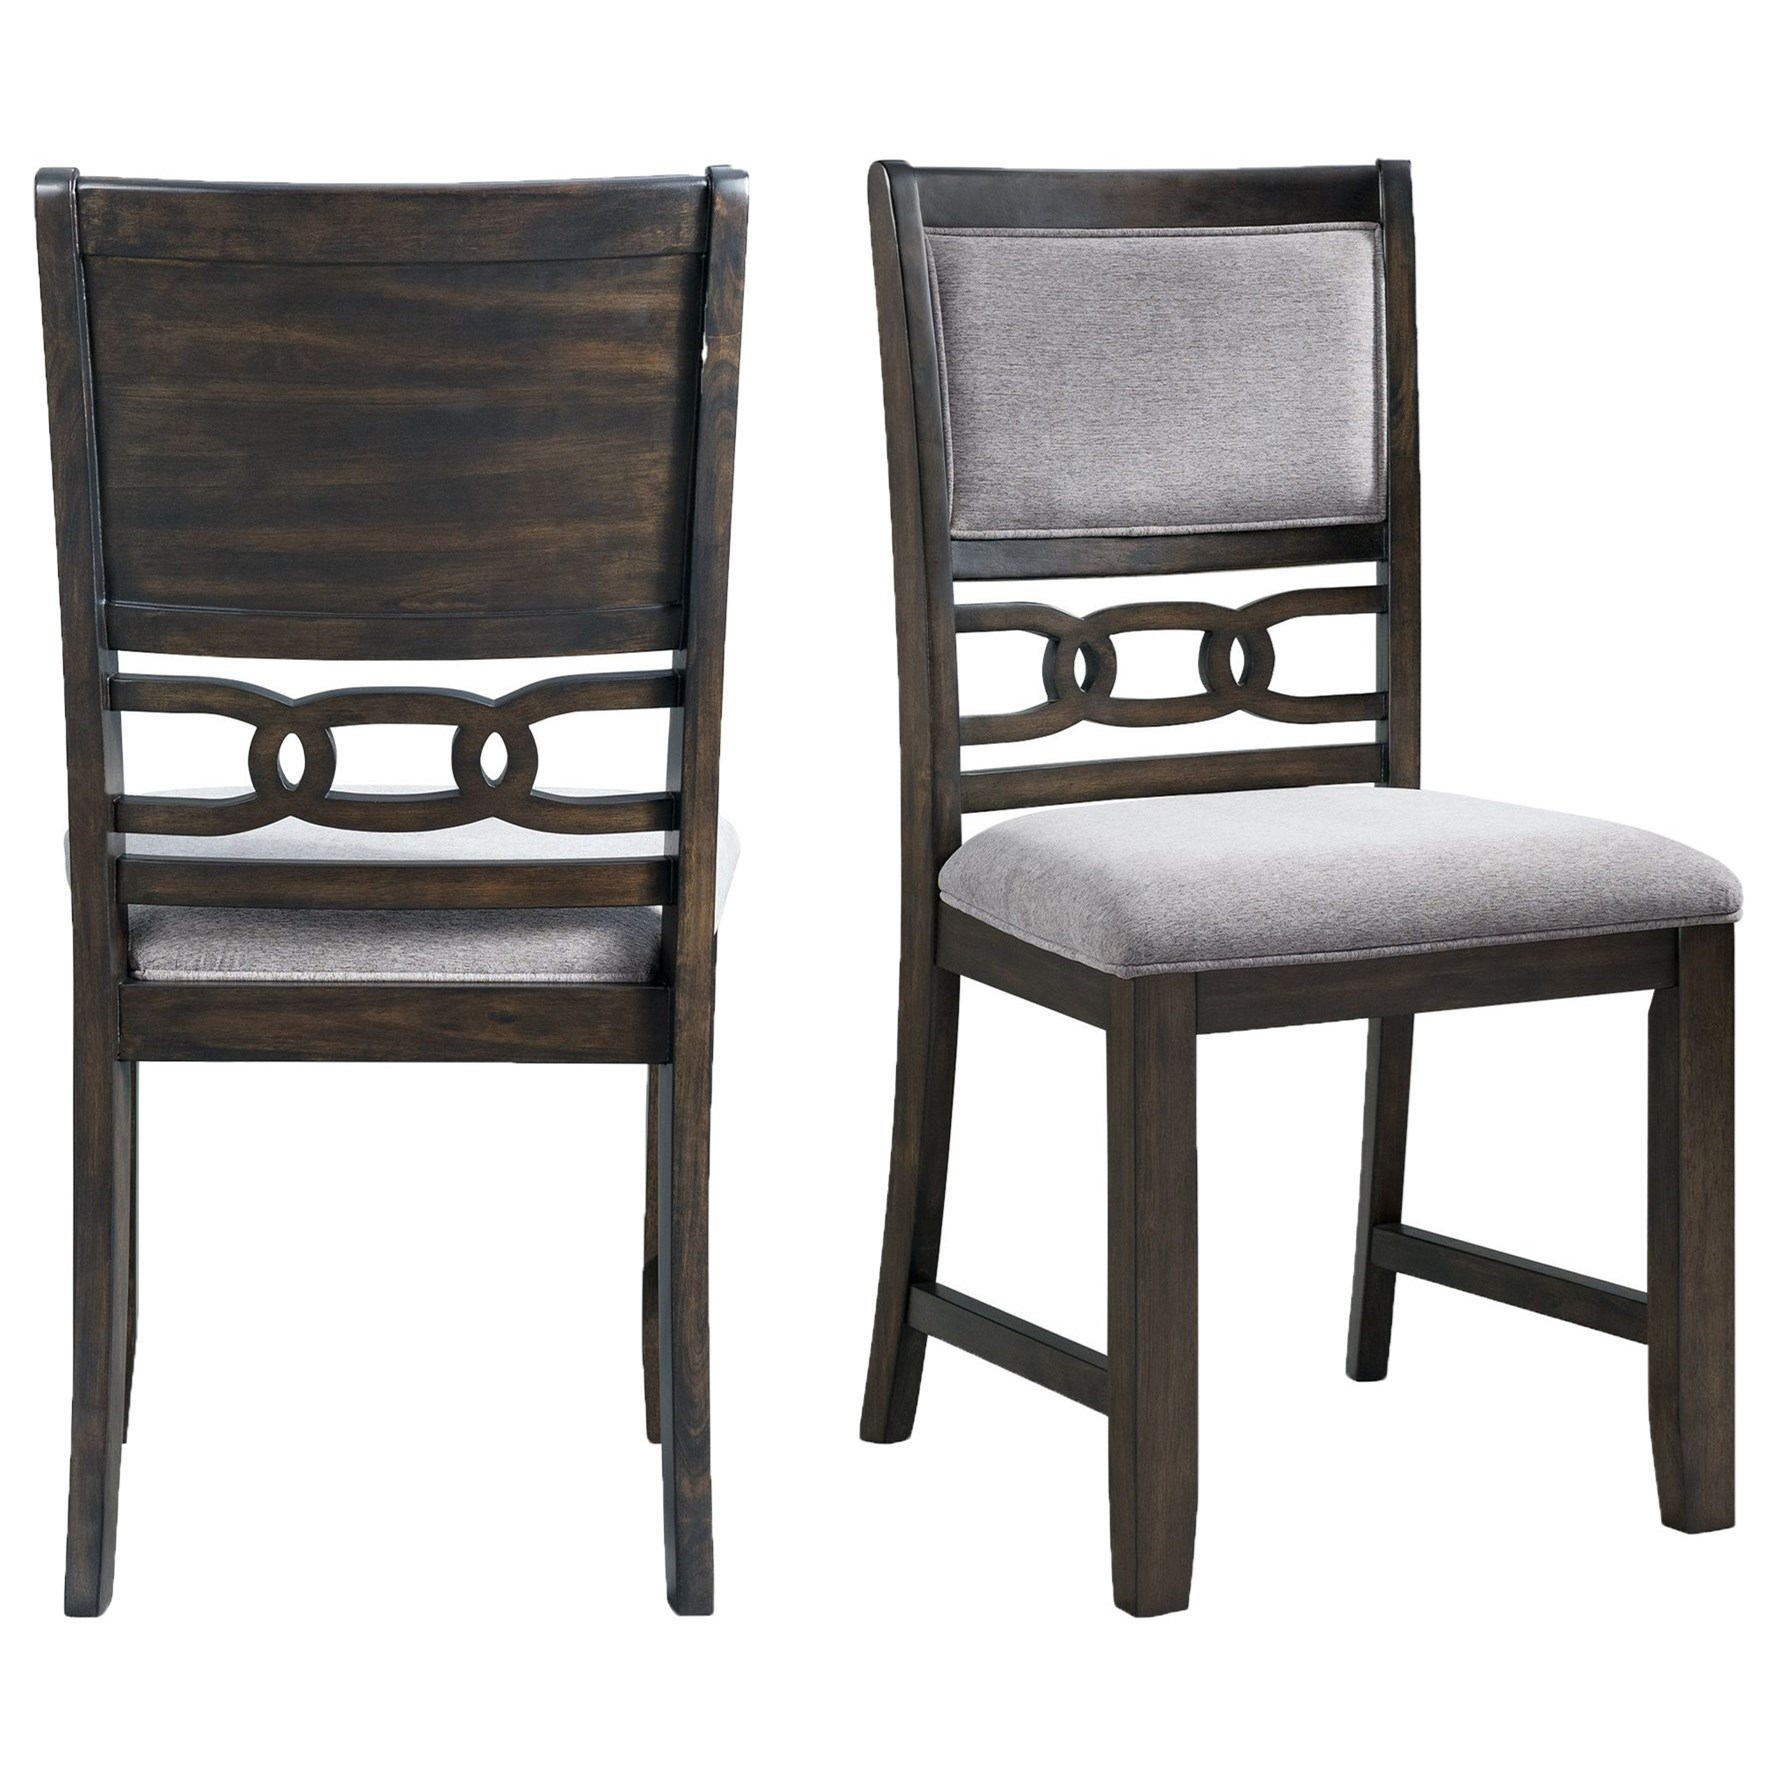 Amherst Standard Height Side Chair by Elements International at Furniture Fair - North Carolina